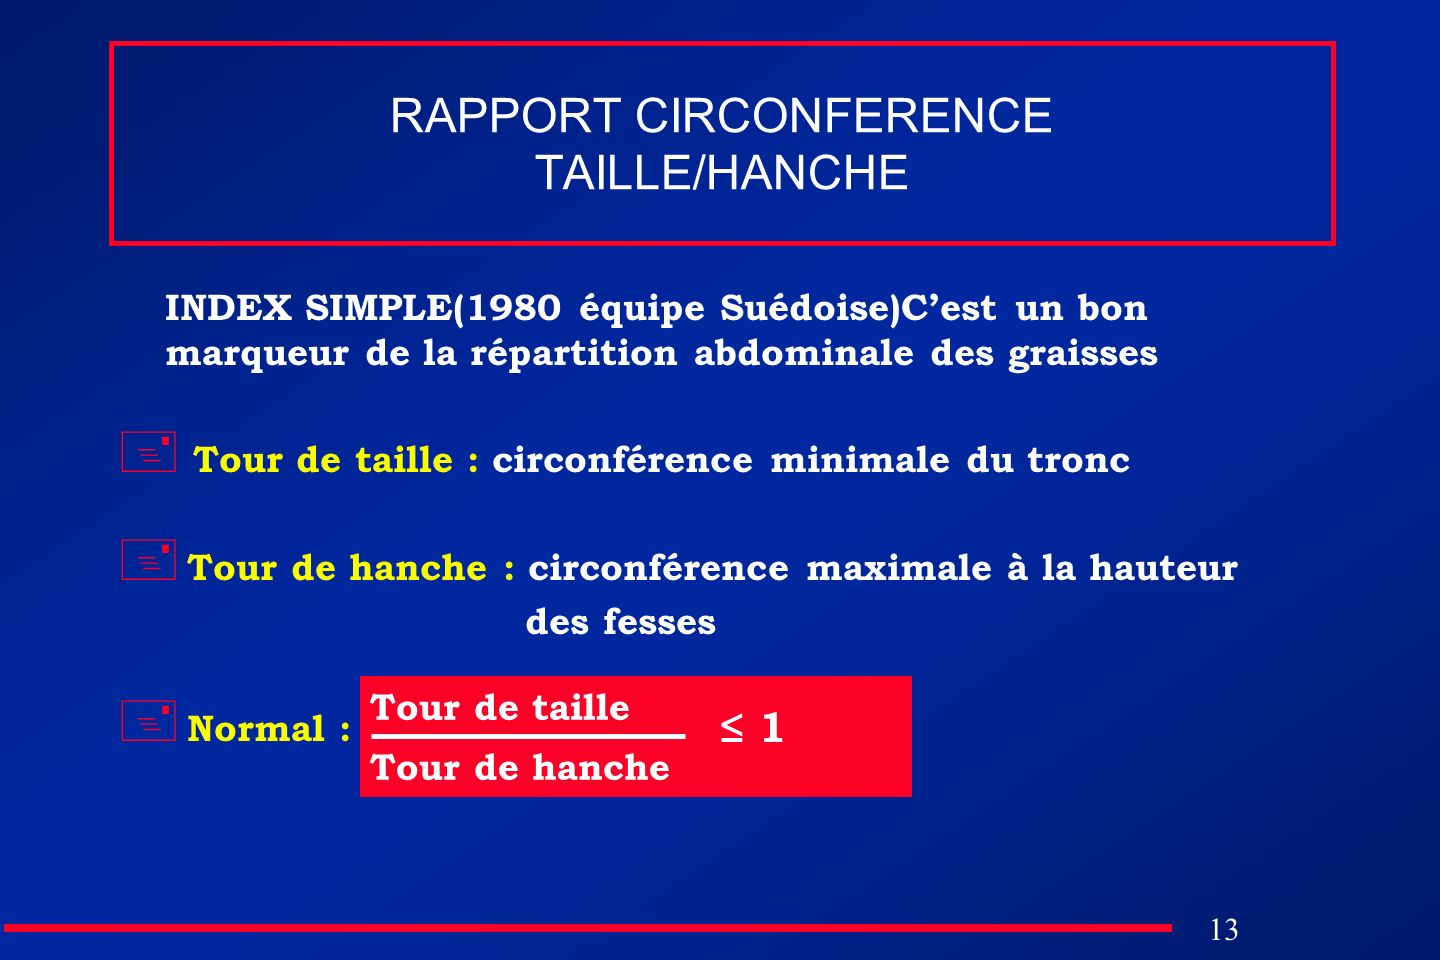 RAPPORT CIRCONFERENCE TAILLE/HANCHE